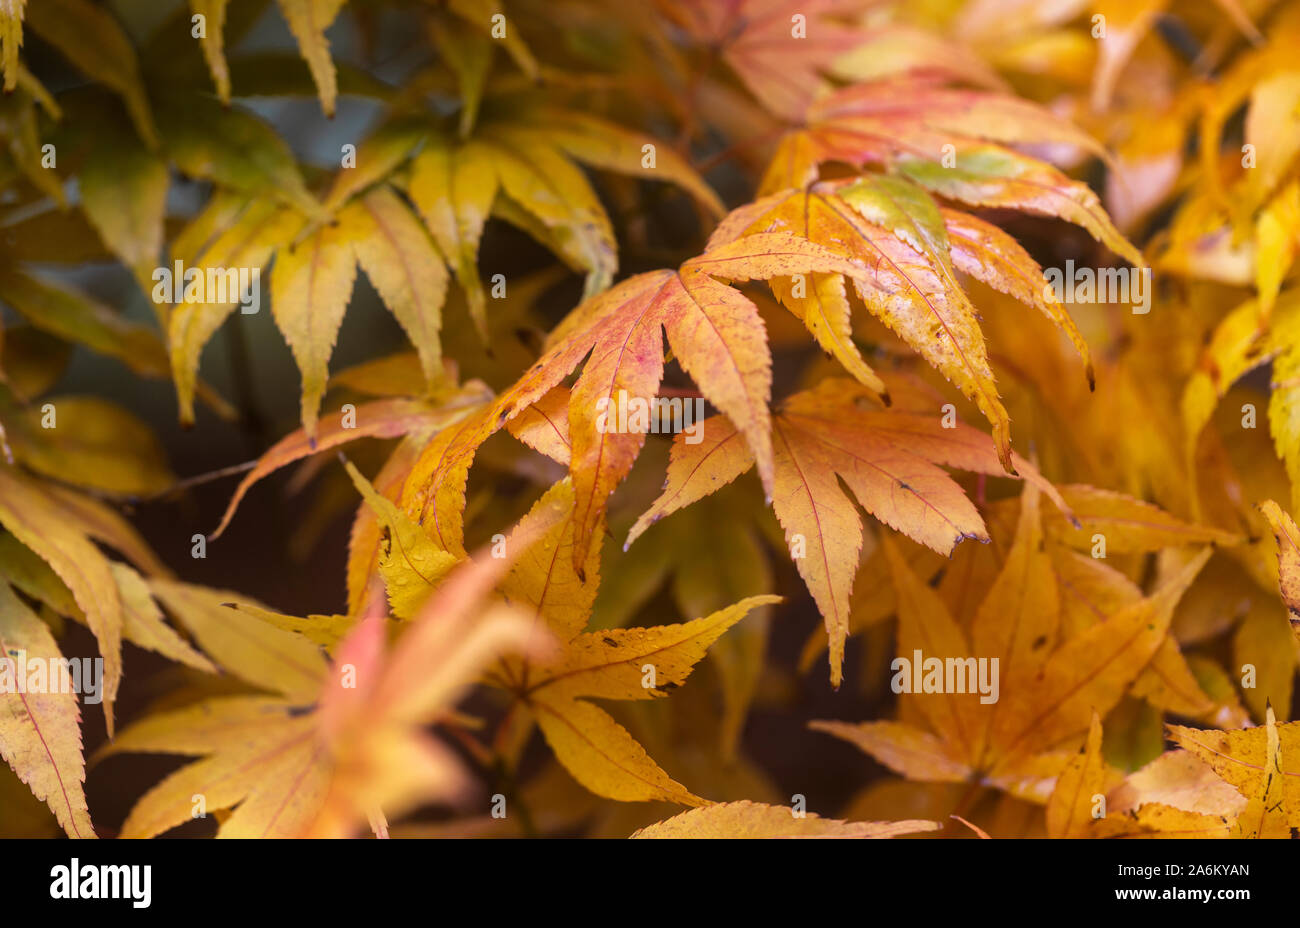 Close up of the autumn golden leaves of an Acer at Westonbirt Arboretum, Gloucestershire, England, UK Stock Photo